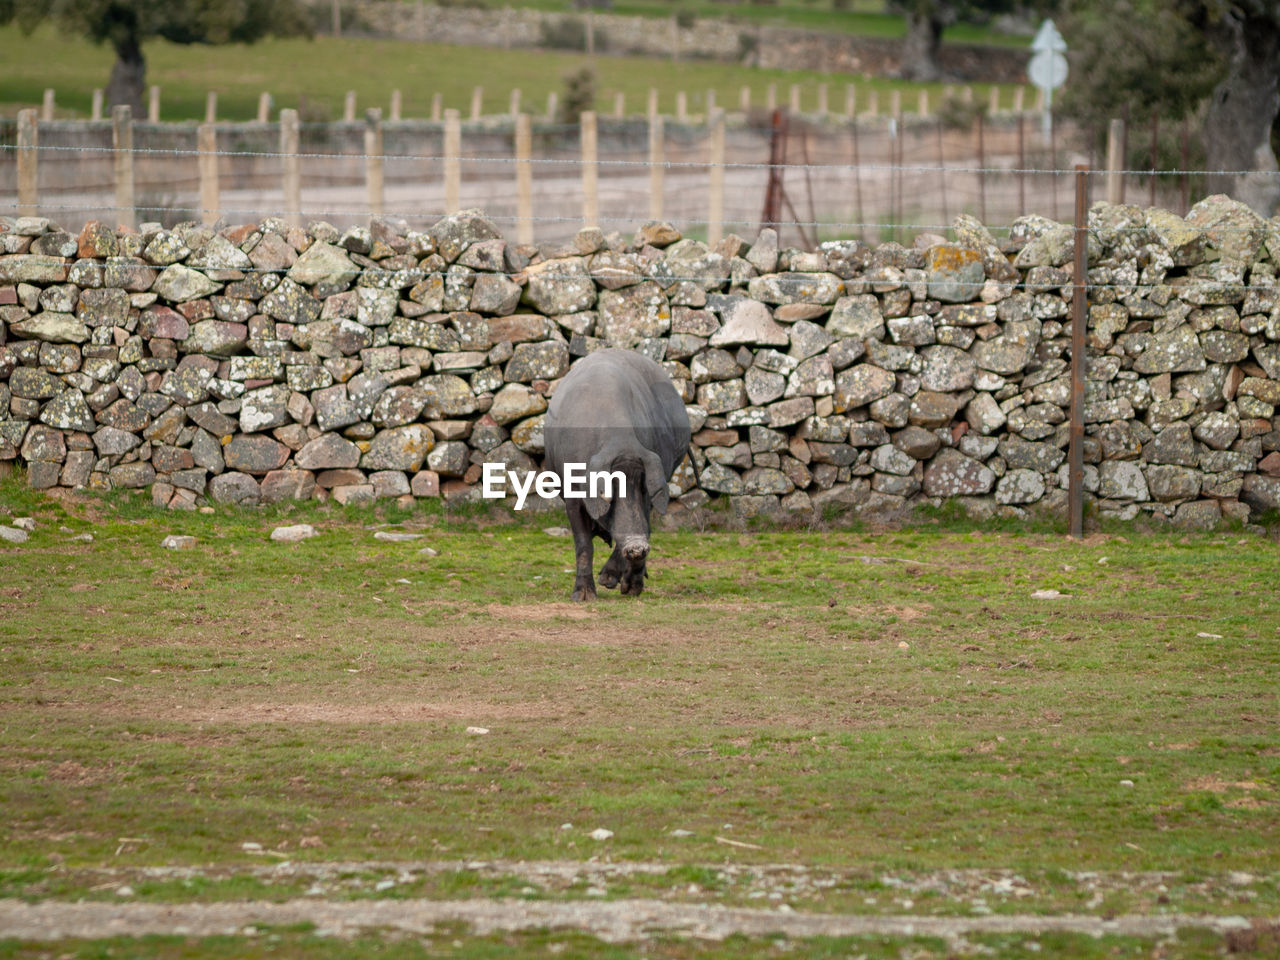 animal, animal themes, mammal, domestic animals, grass, vertebrate, one animal, domestic, livestock, field, pets, plant, day, animal wildlife, land, no people, nature, landscape, agriculture, full length, outdoors, stone wall, herbivorous